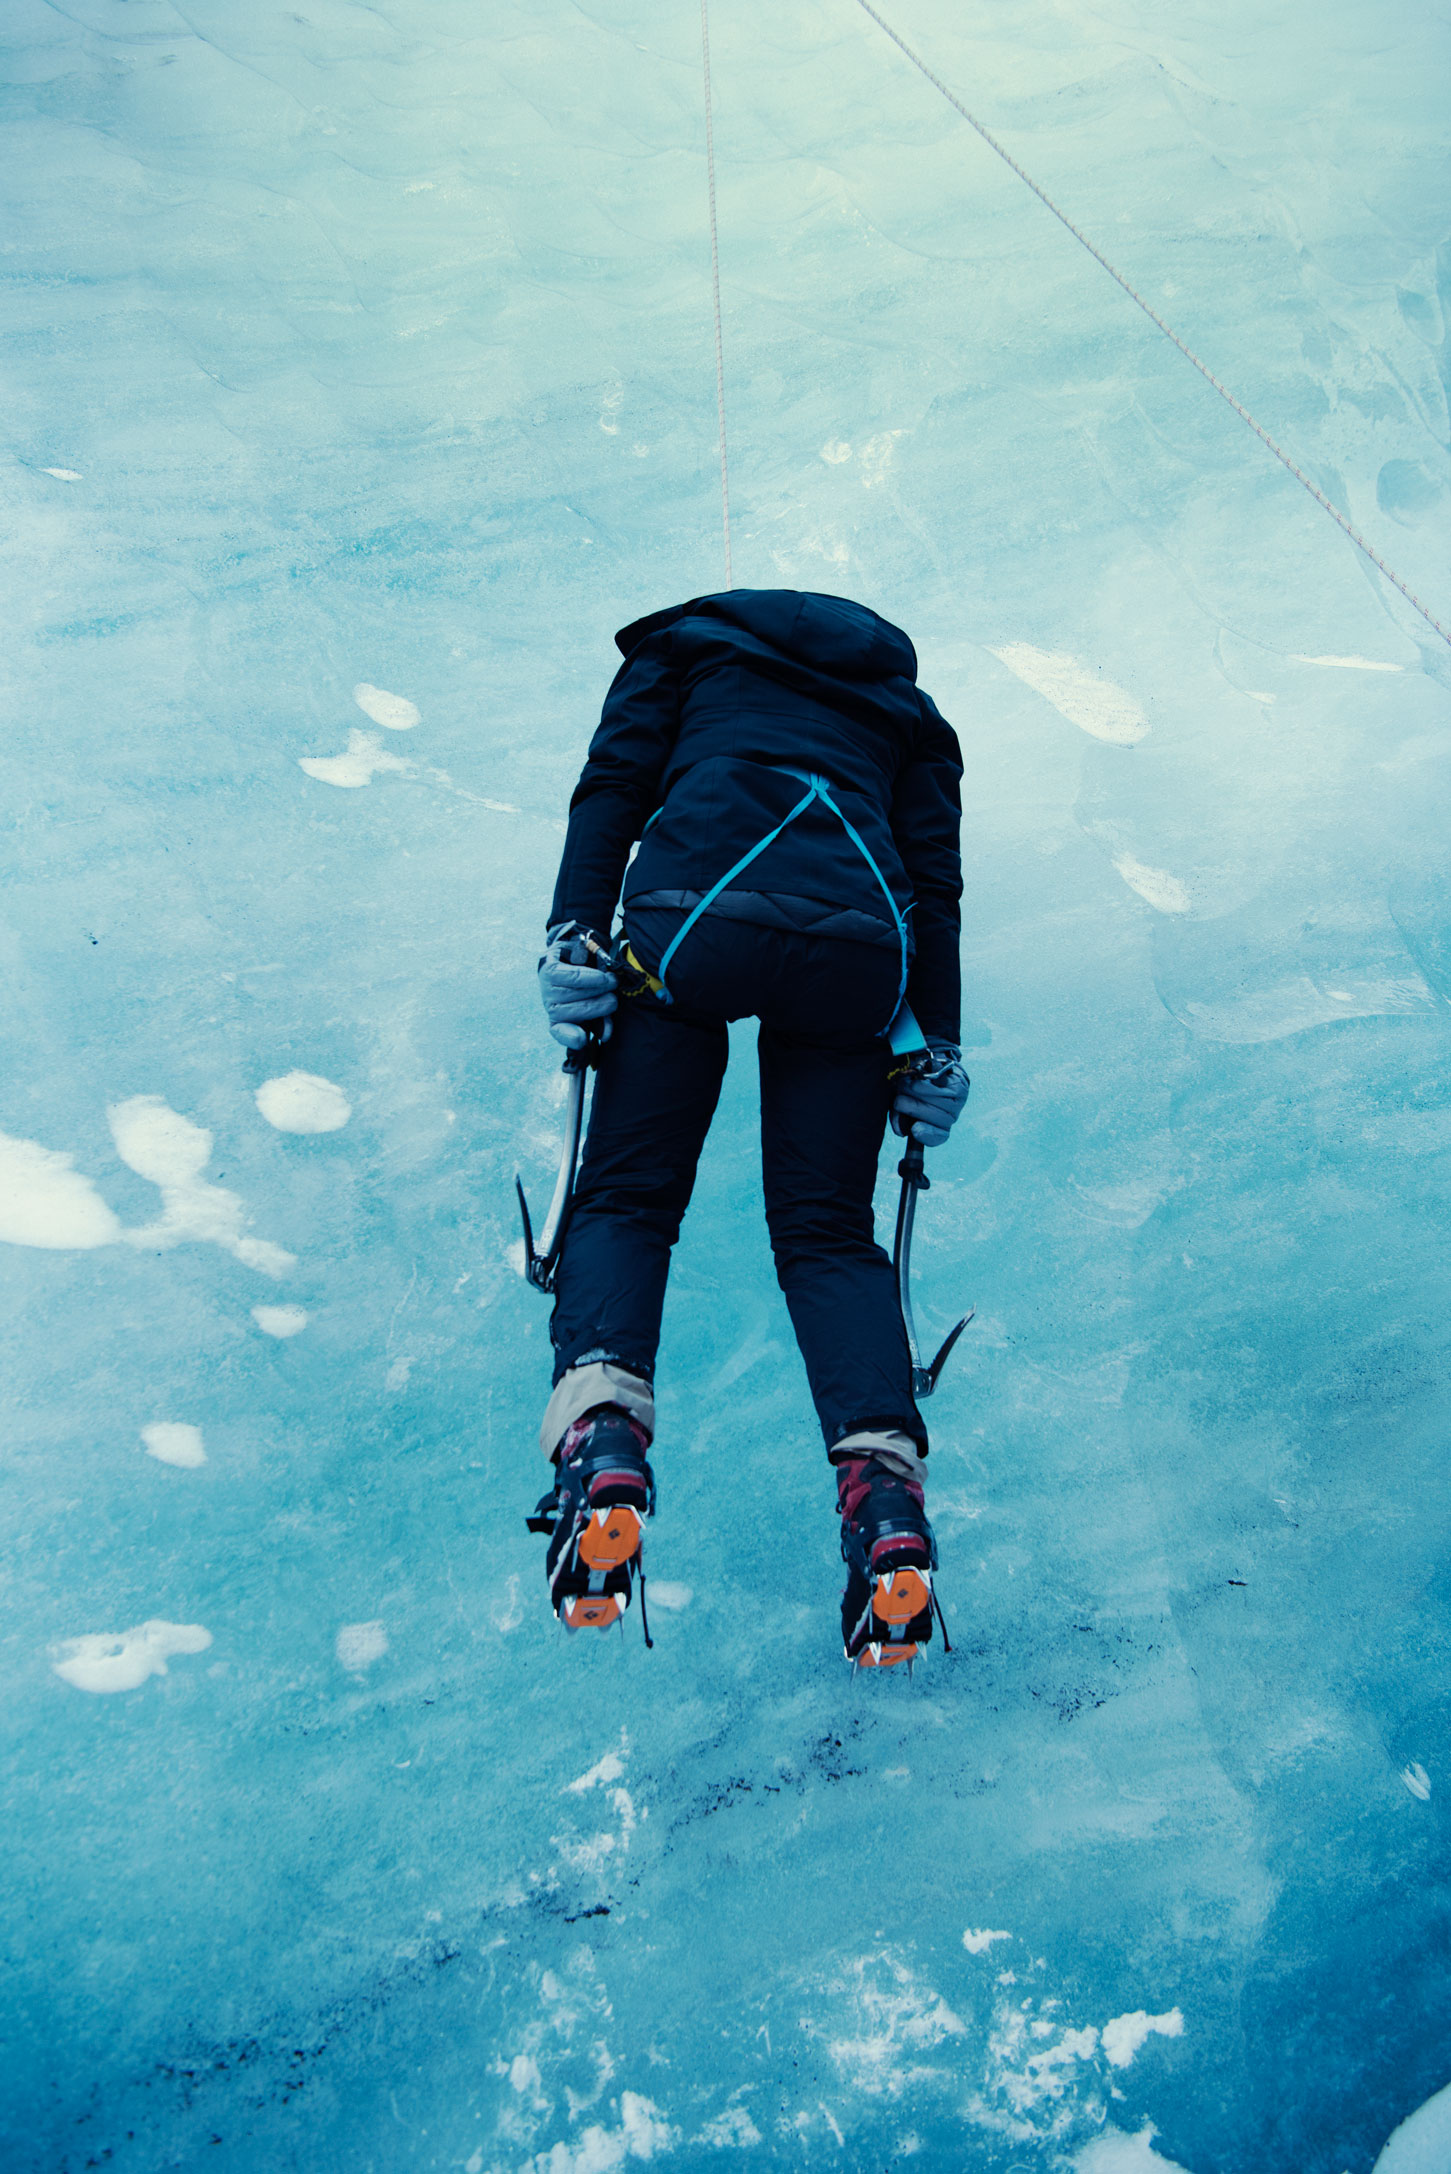 eleanor_ice_climbing_deadguy